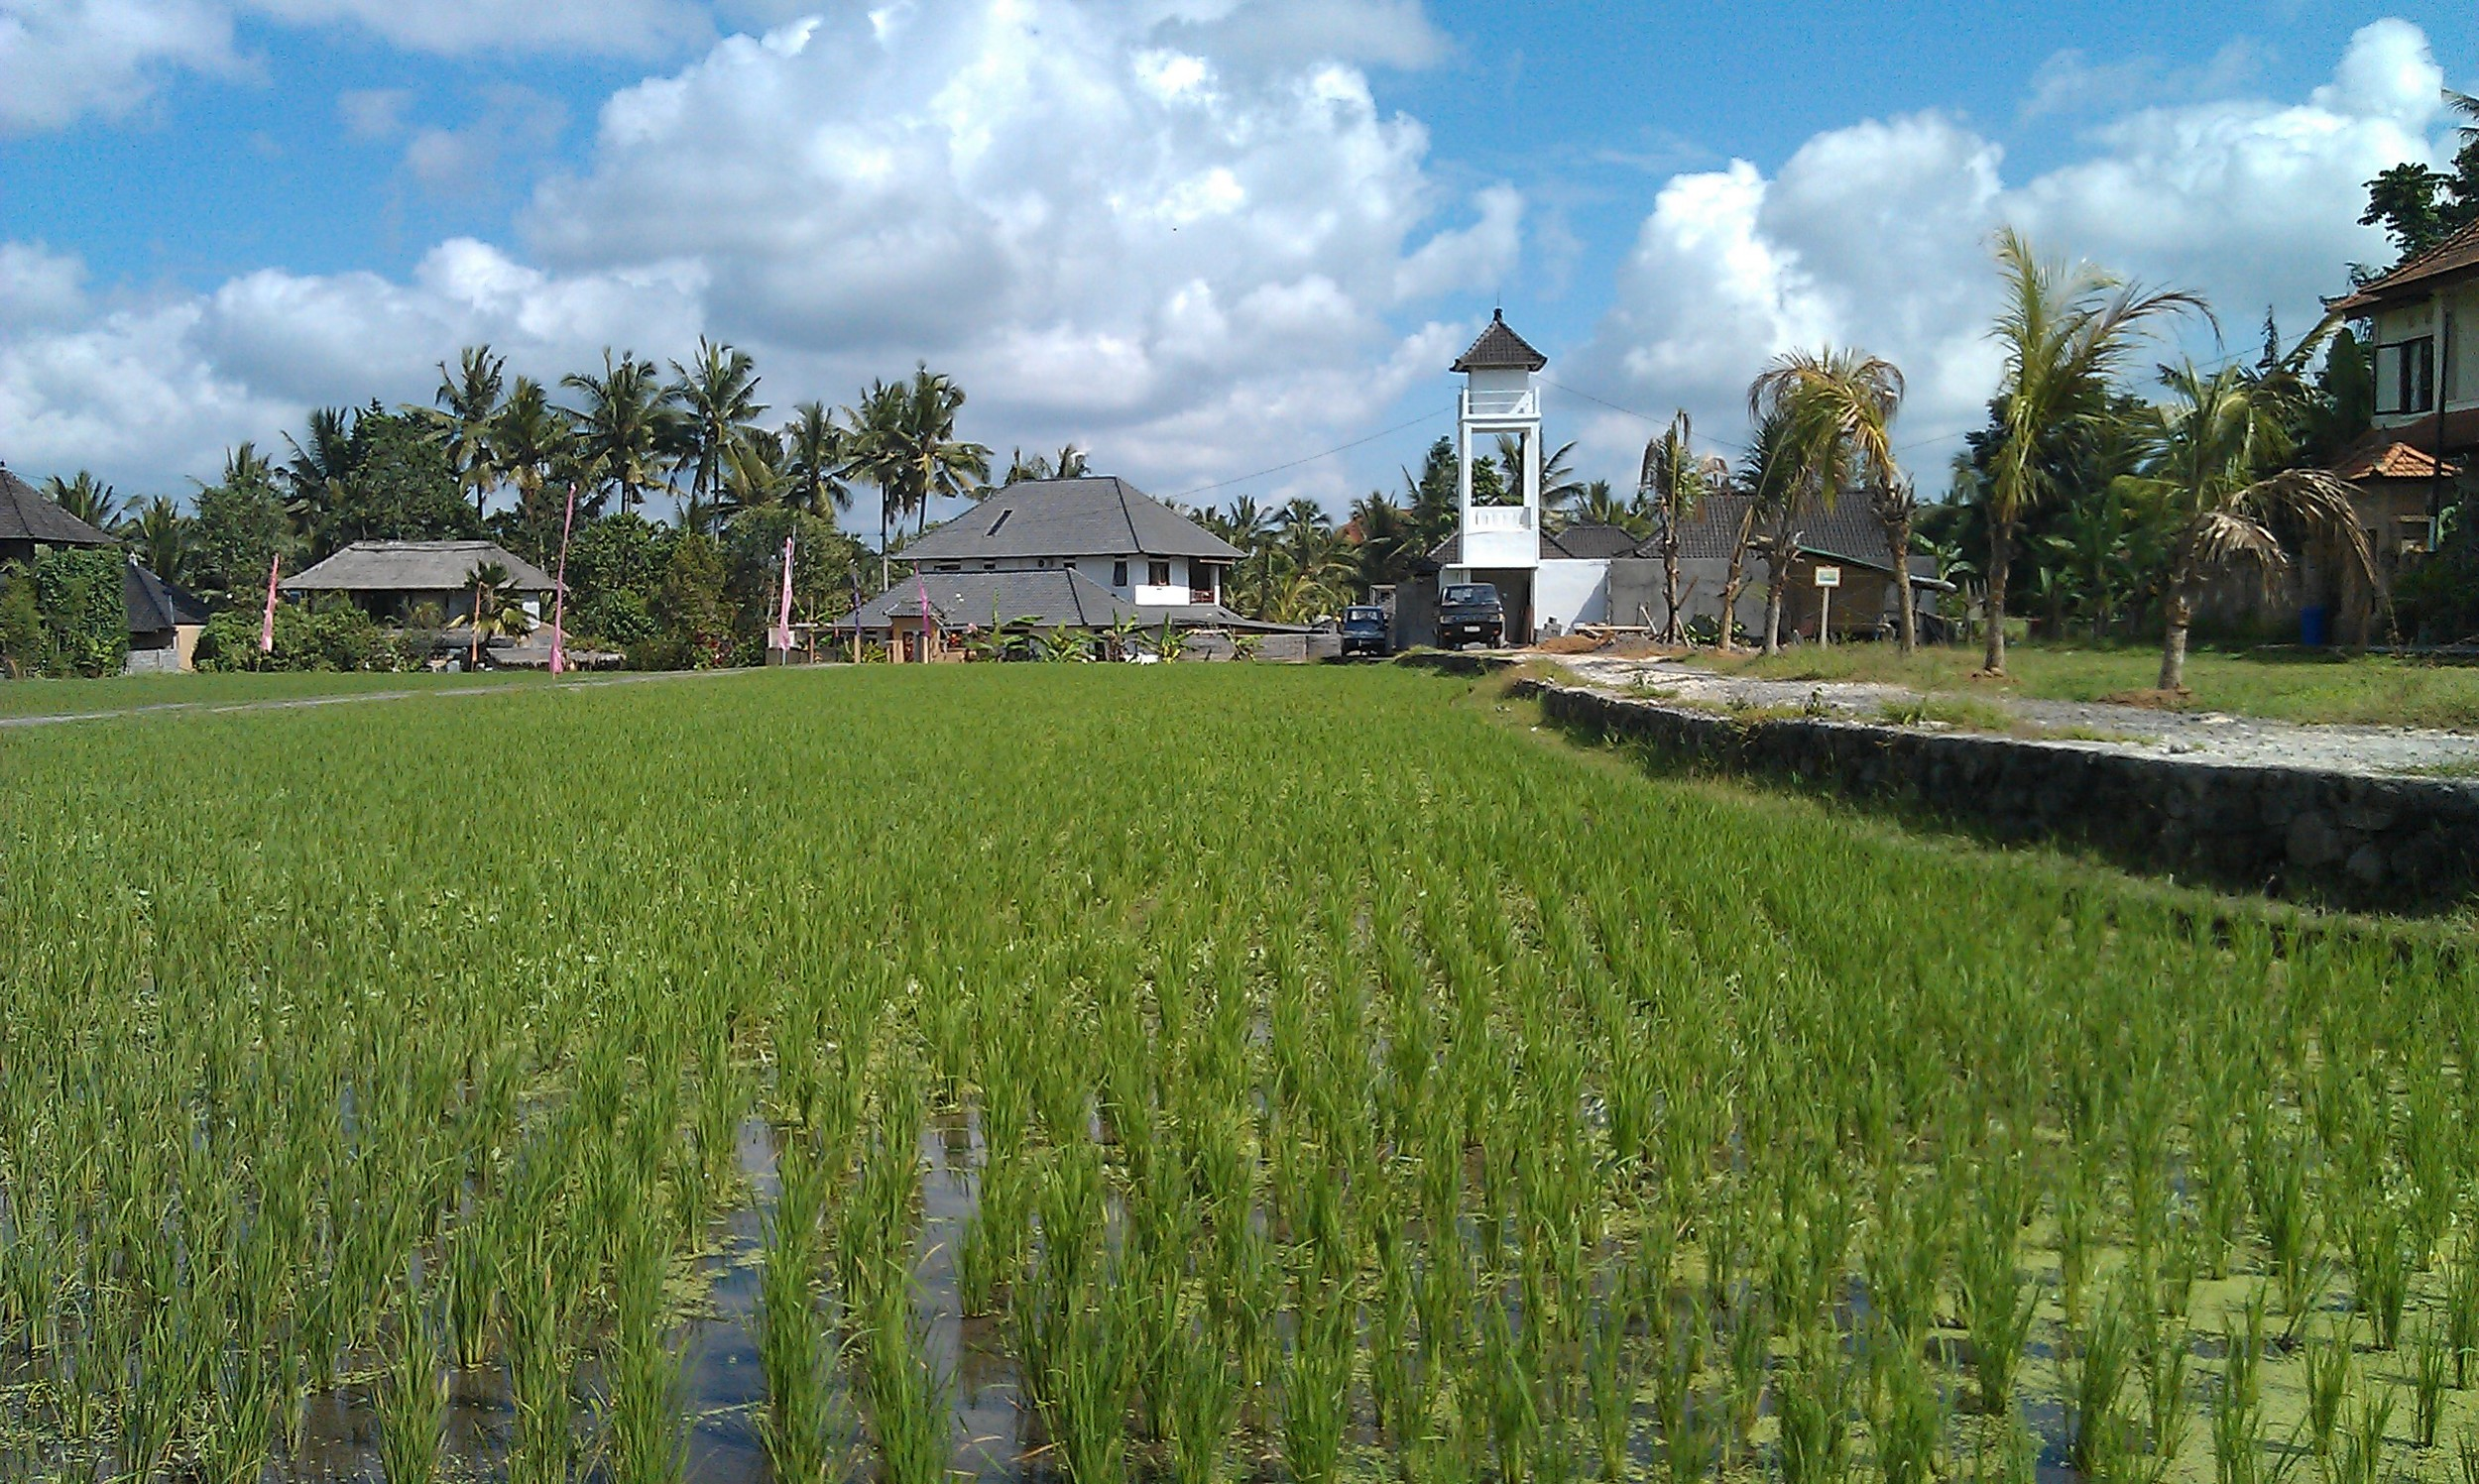 Rice paddy in Bali